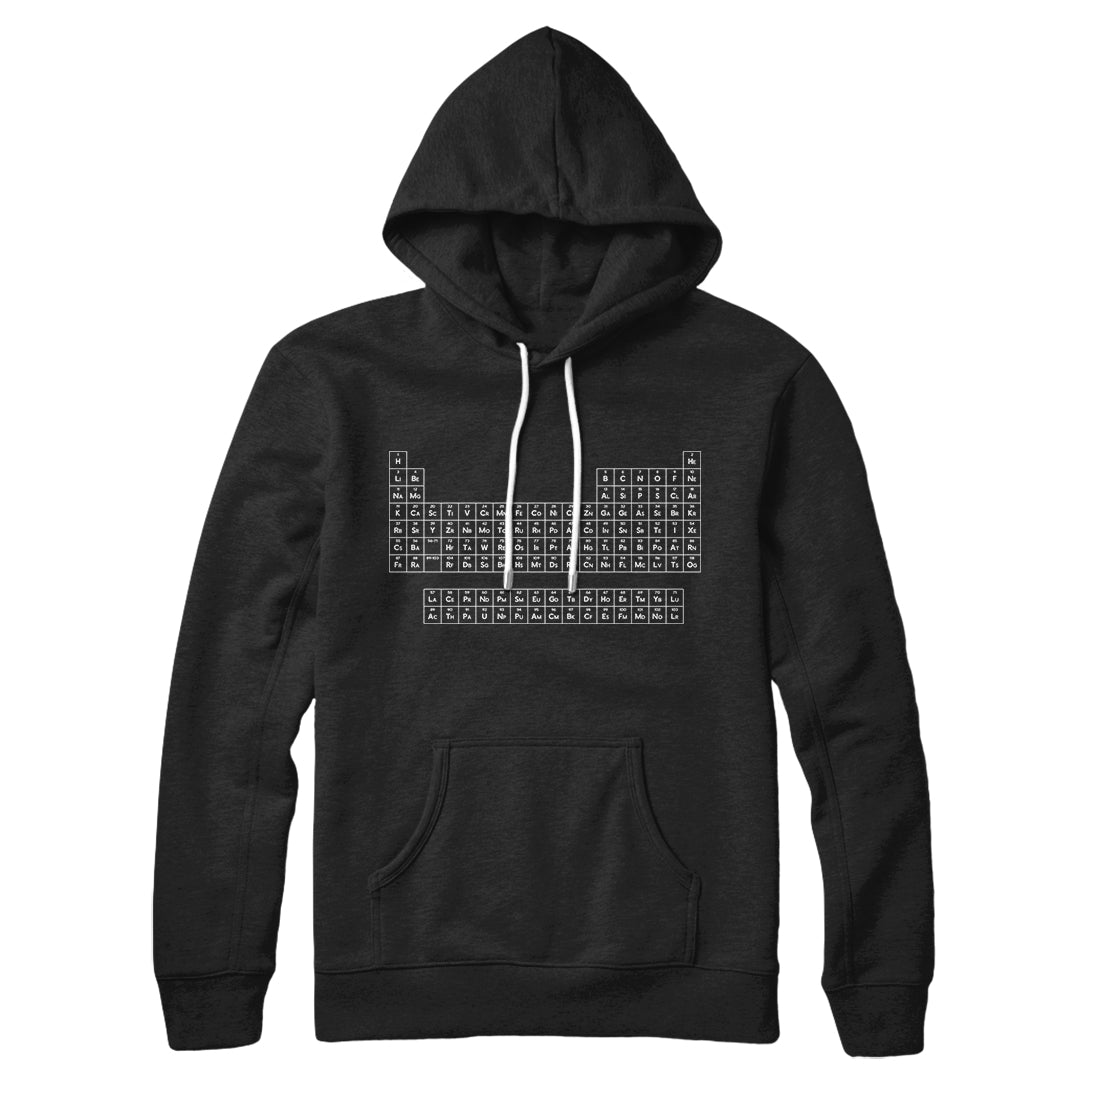 Periodic table of elements hoodie famous irl periodic table of elements hoodie famous irl funny and ironic t shirts and apparel urtaz Gallery